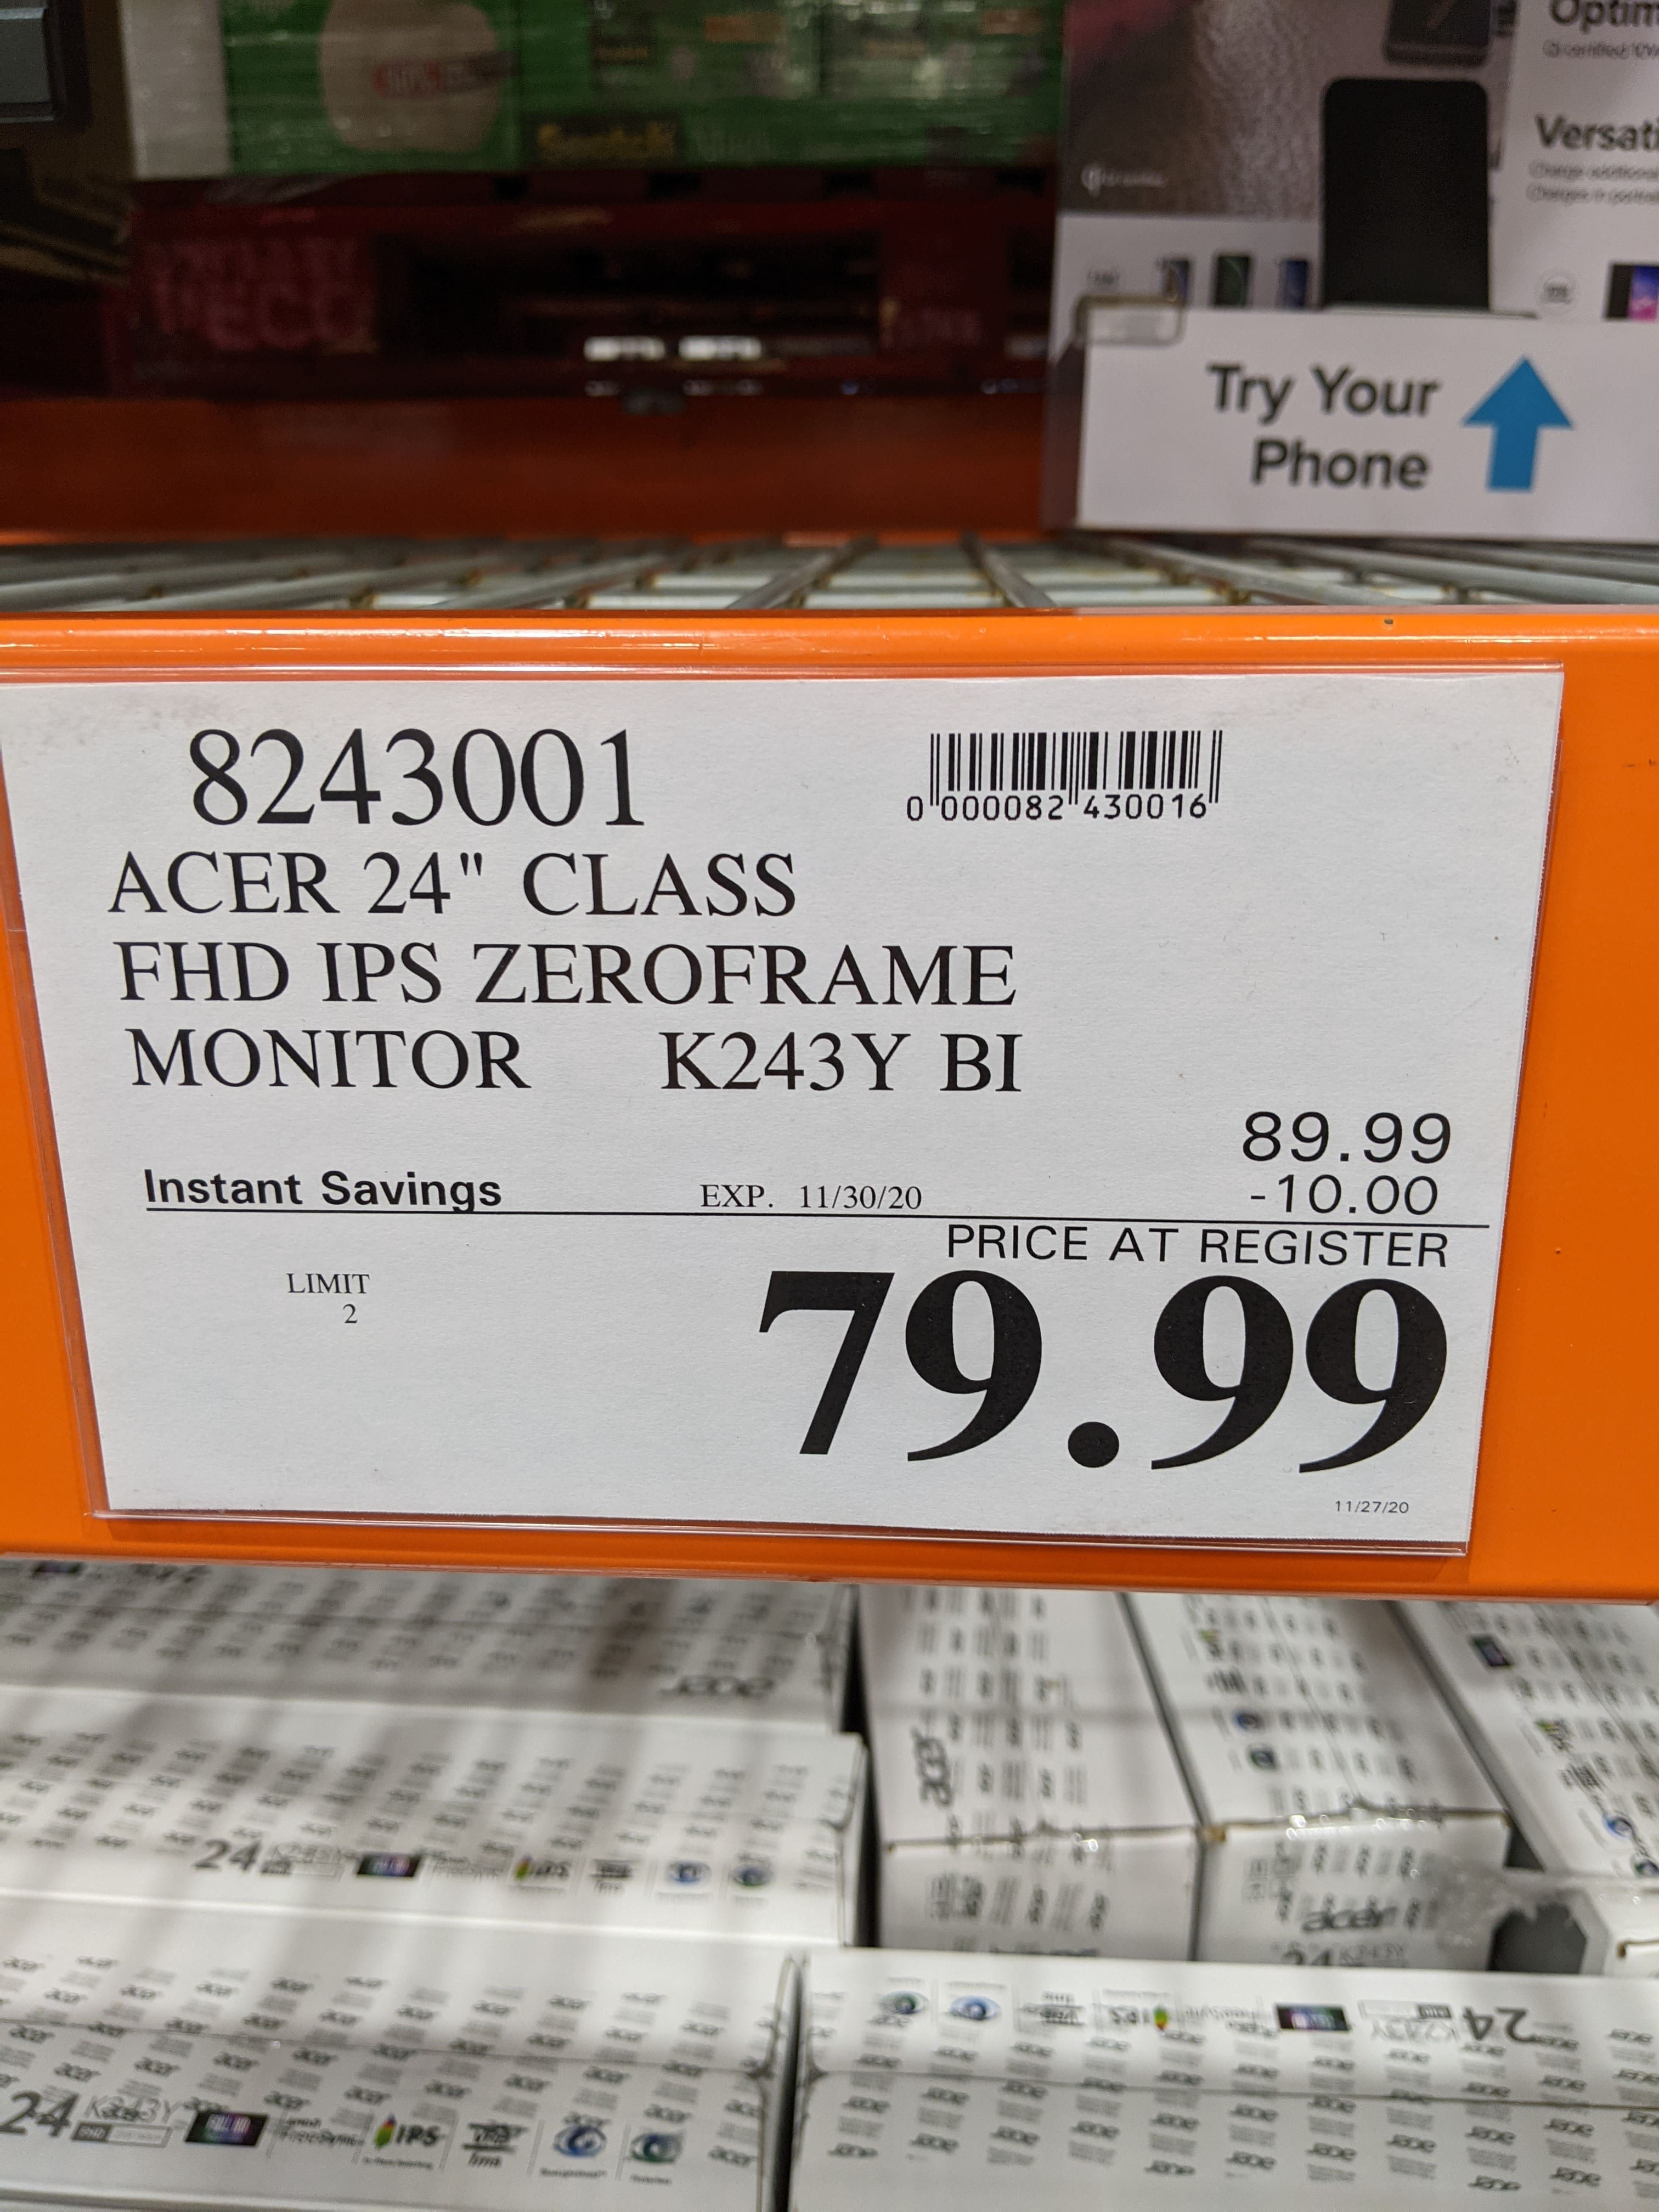 Acer 24 inch FHD IPS Monitor K3 Series K243Y BI - $79.99 at Costco Stores Only (YMMV)